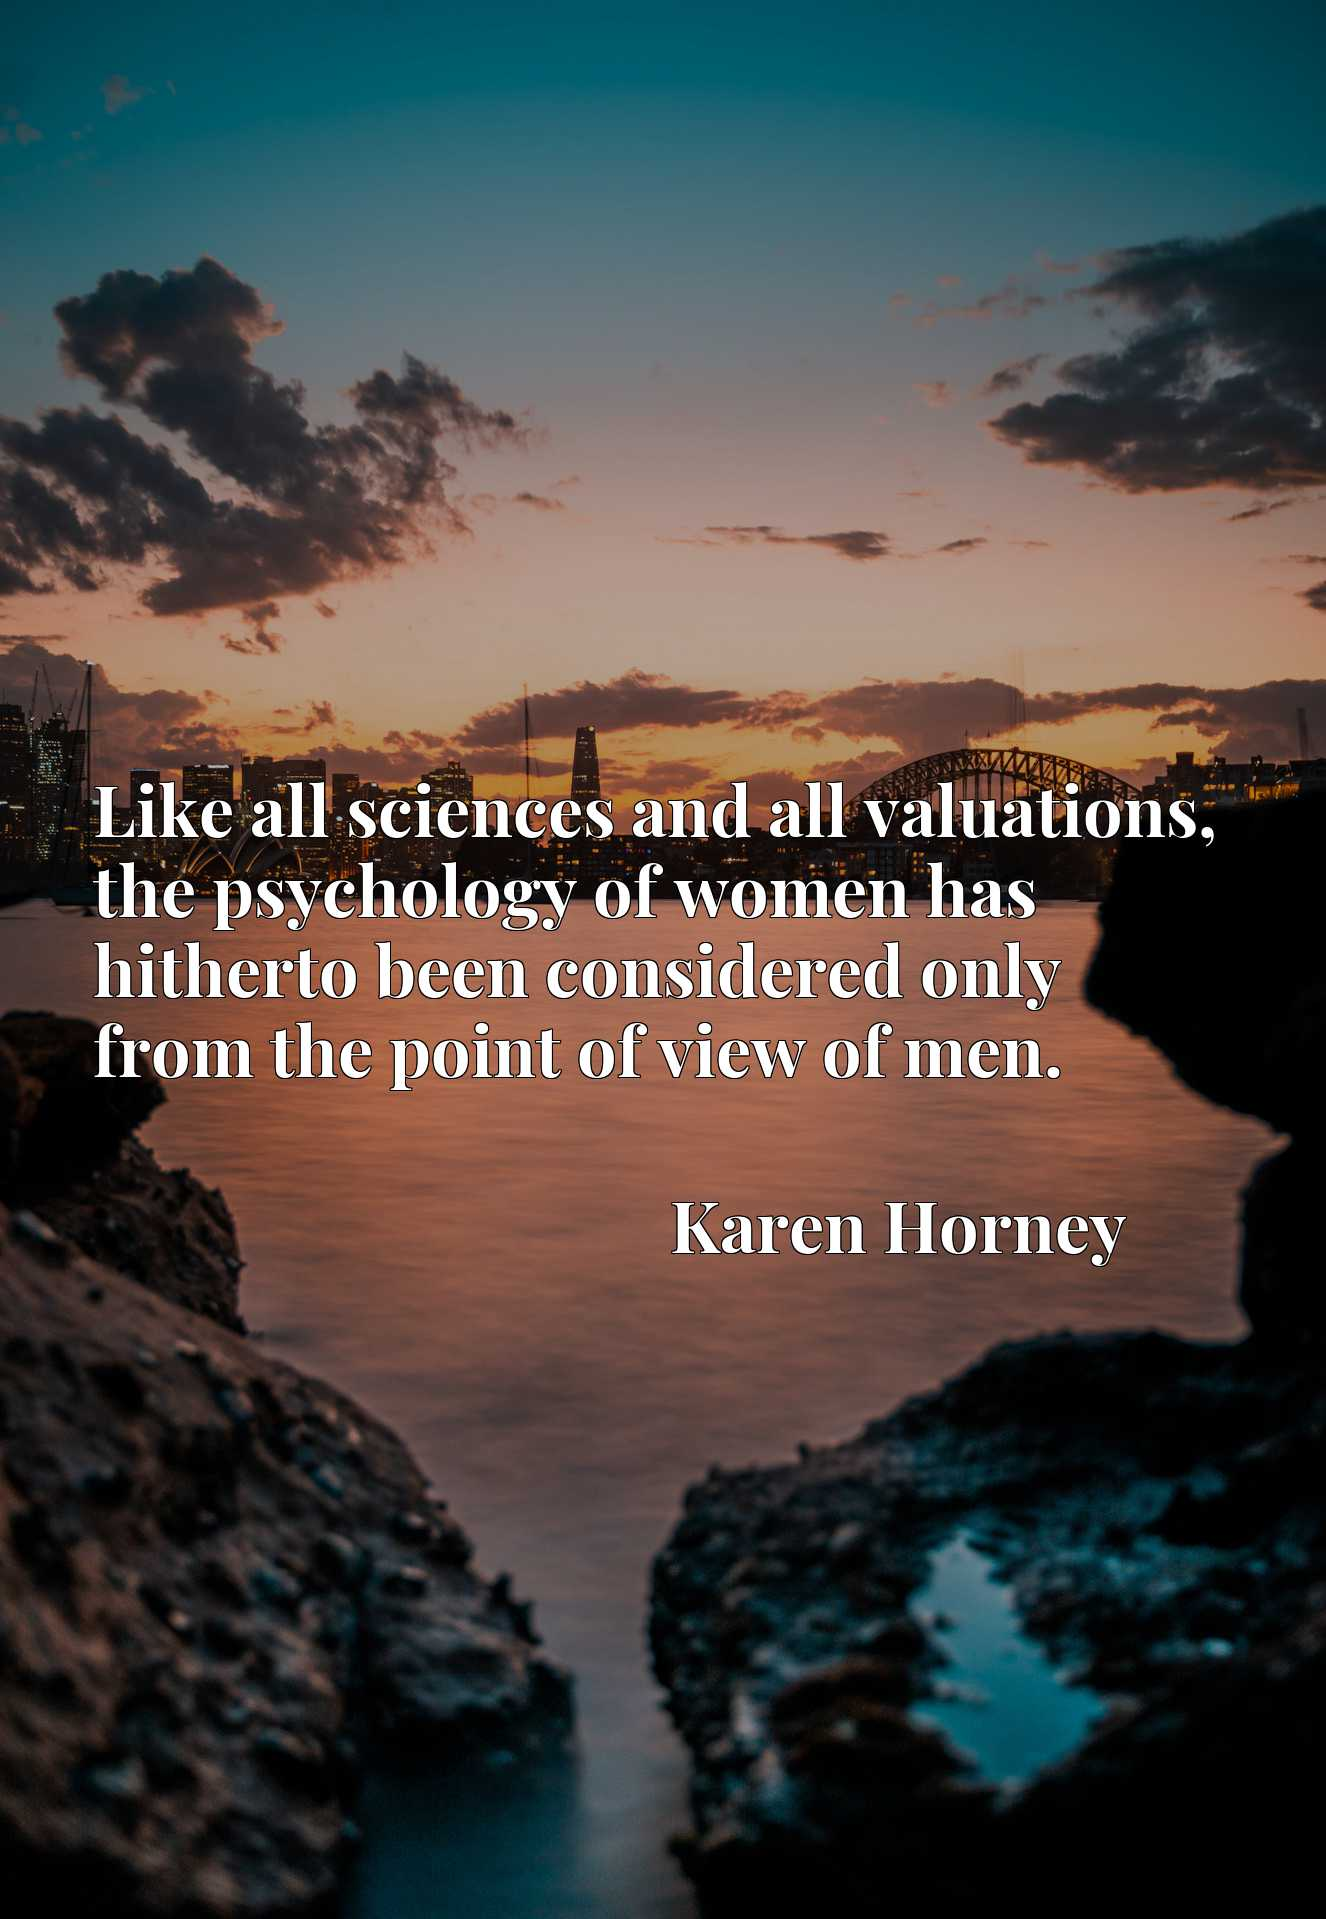 Like all sciences and all valuations, the psychology of women has hitherto been considered only from the point of view of men.